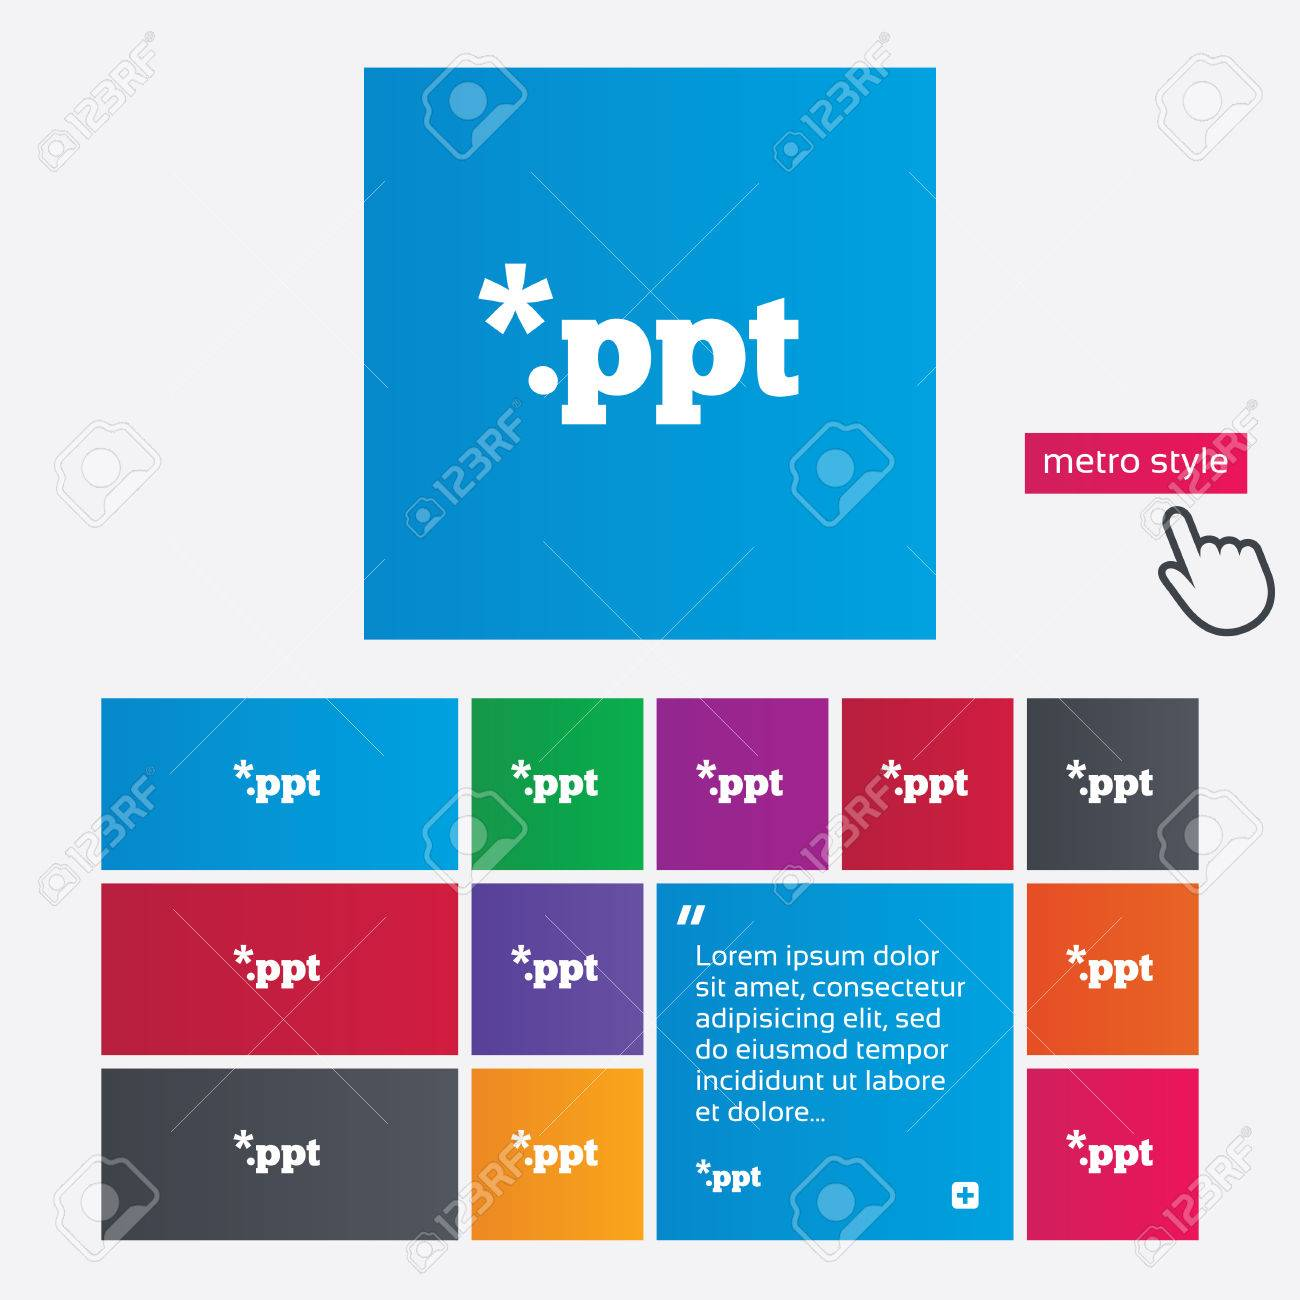 Powerpoint 2003 templates free download images templates example powerpoint template extension choice image powerpoint template powerpoint 2003 templates free download gallery templates powerpoint 2003 toneelgroepblik Images